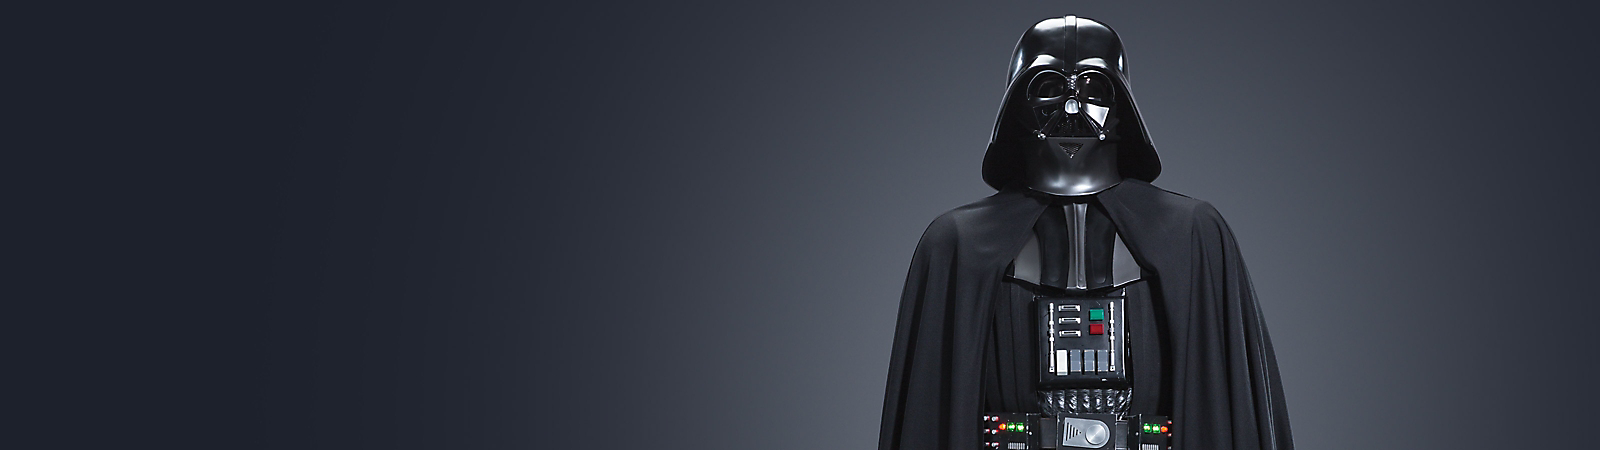 Background image of Darth Vader